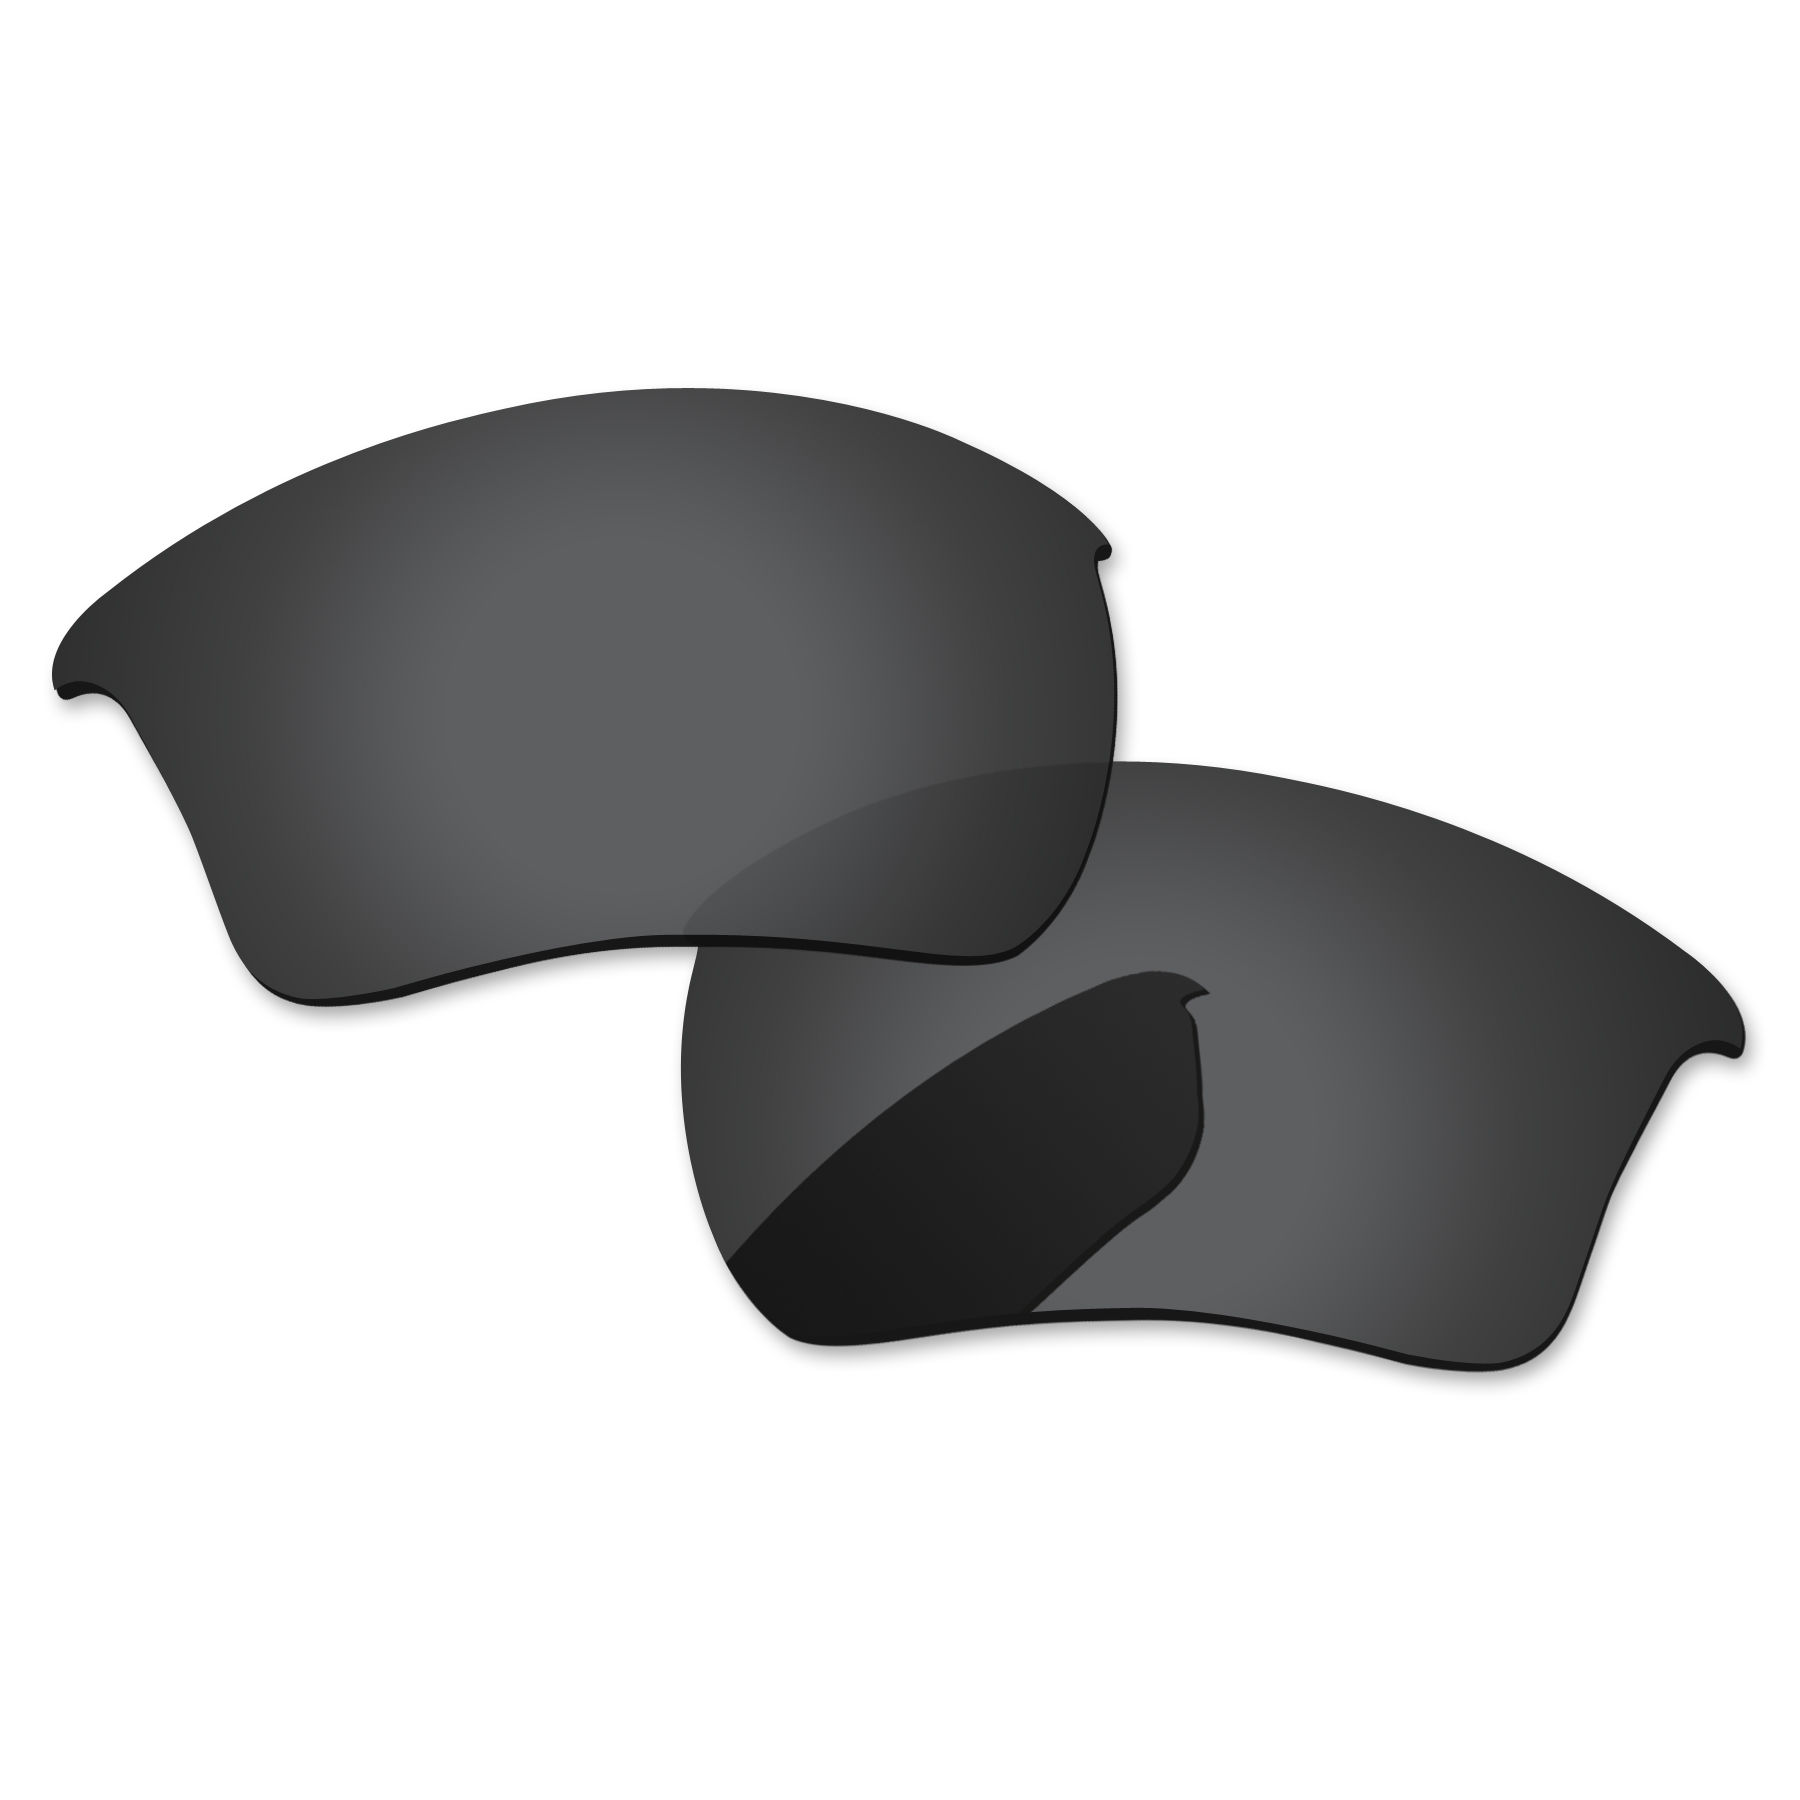 Image 2 - PapaViva Replacement Lenses and Rubber Kit for Authentic Half Jacket 2.0 XL Sunglasses Frame   Multiple Options-in Eyewear Accessories from Apparel Accessories